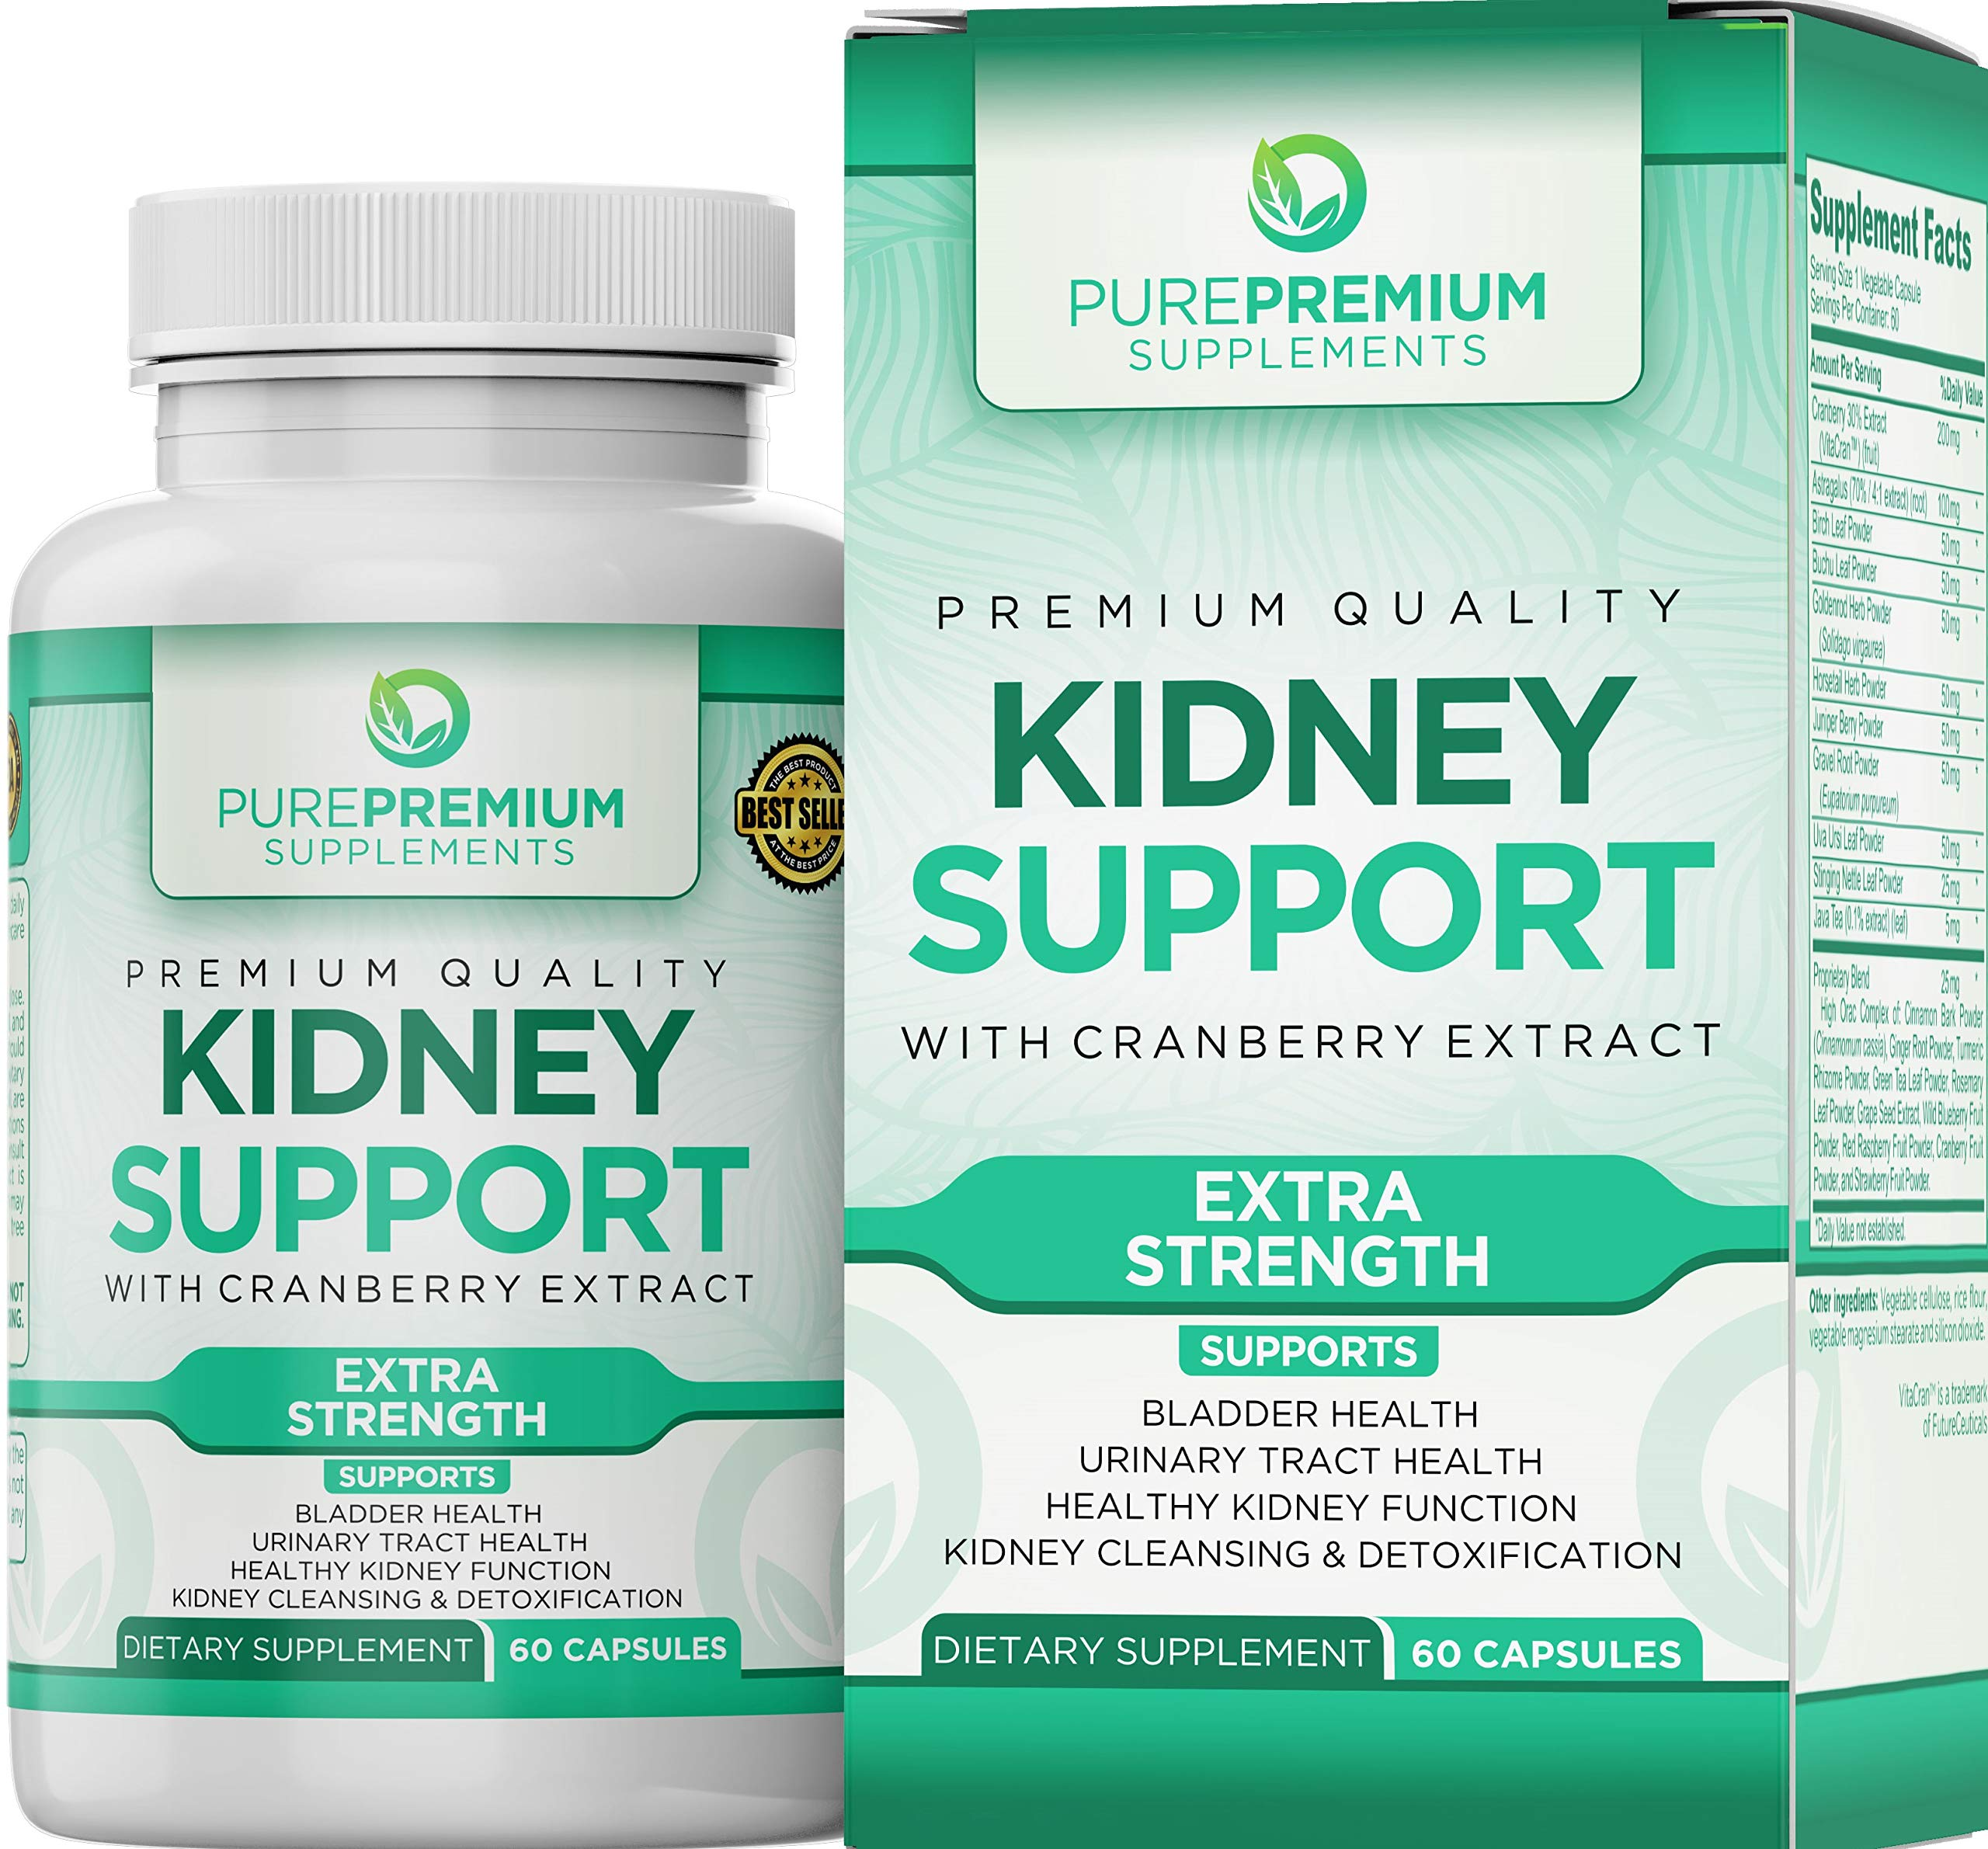 Premium Kidney Support Supplement by PurePremium (Kidney Cleanse Supplement) Potent Herbal Ingredients for Urinary Tract and Bladder Health - Cranberry Extract, Astragalus and Uva Ursi Leaf - 60 Caps by PurePremium Supplements